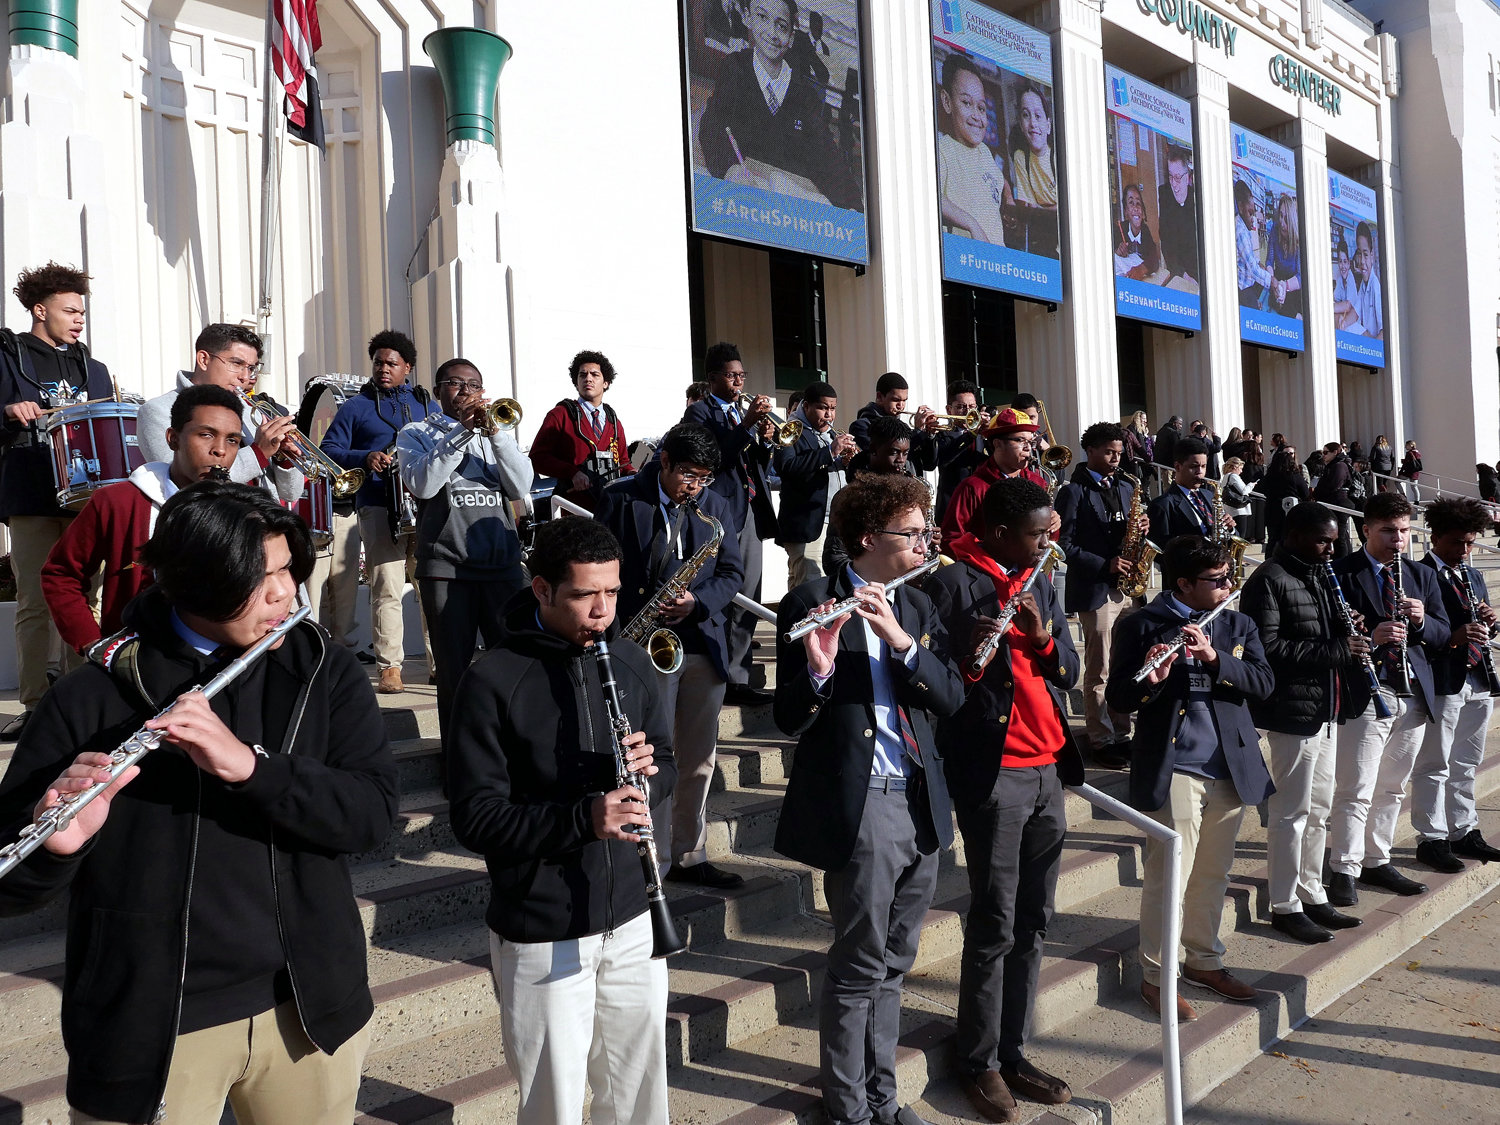 The band from Cardinal Hayes High School in the Bronx provides a musical welcome outside Westchester County Center.